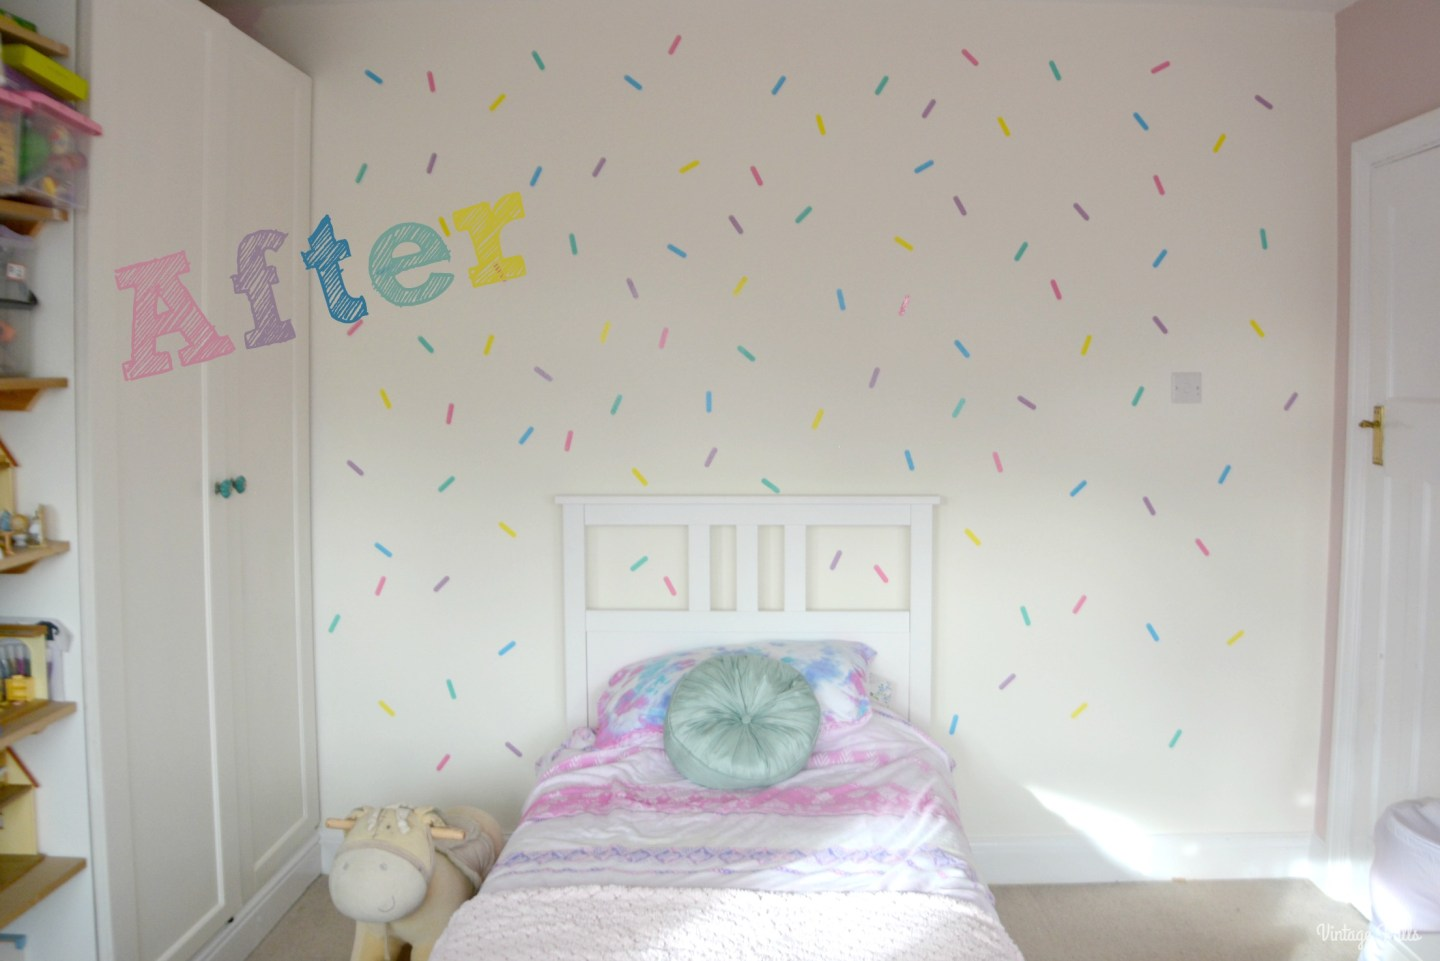 Ice Cream Theme Sprinkle wall decals